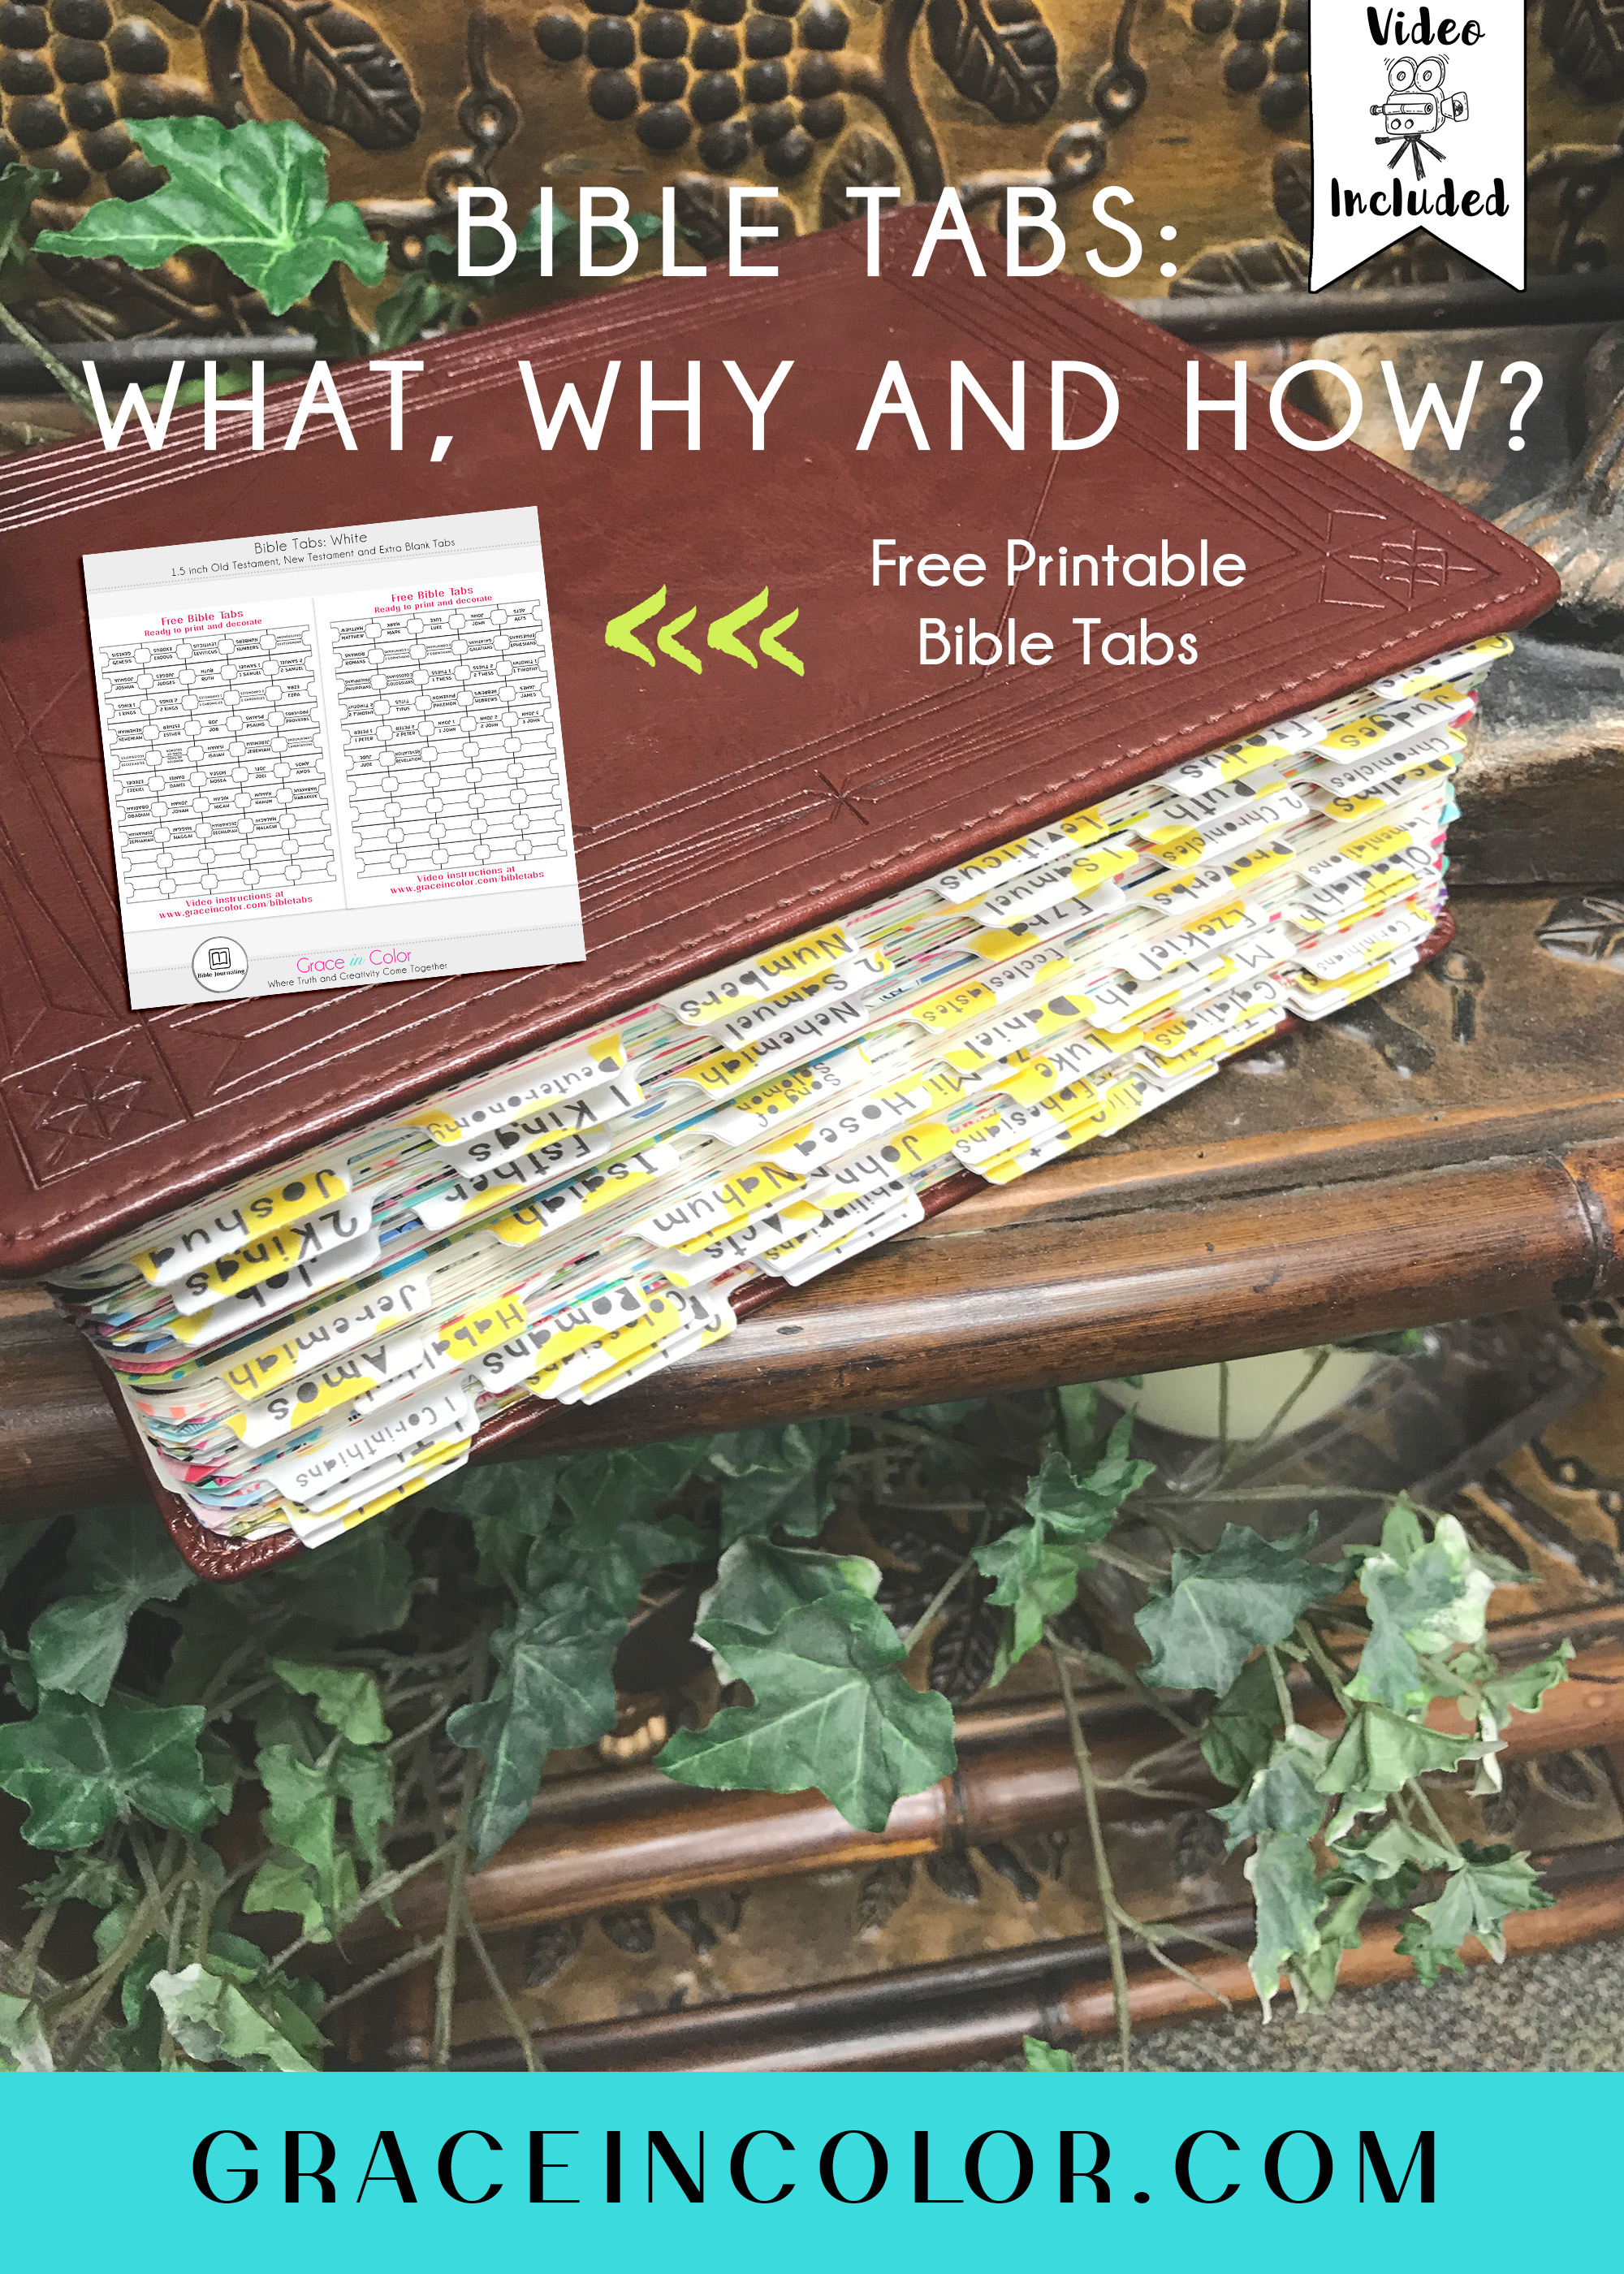 Bible Tabs: What, Why and How {Video} - Grace in Color